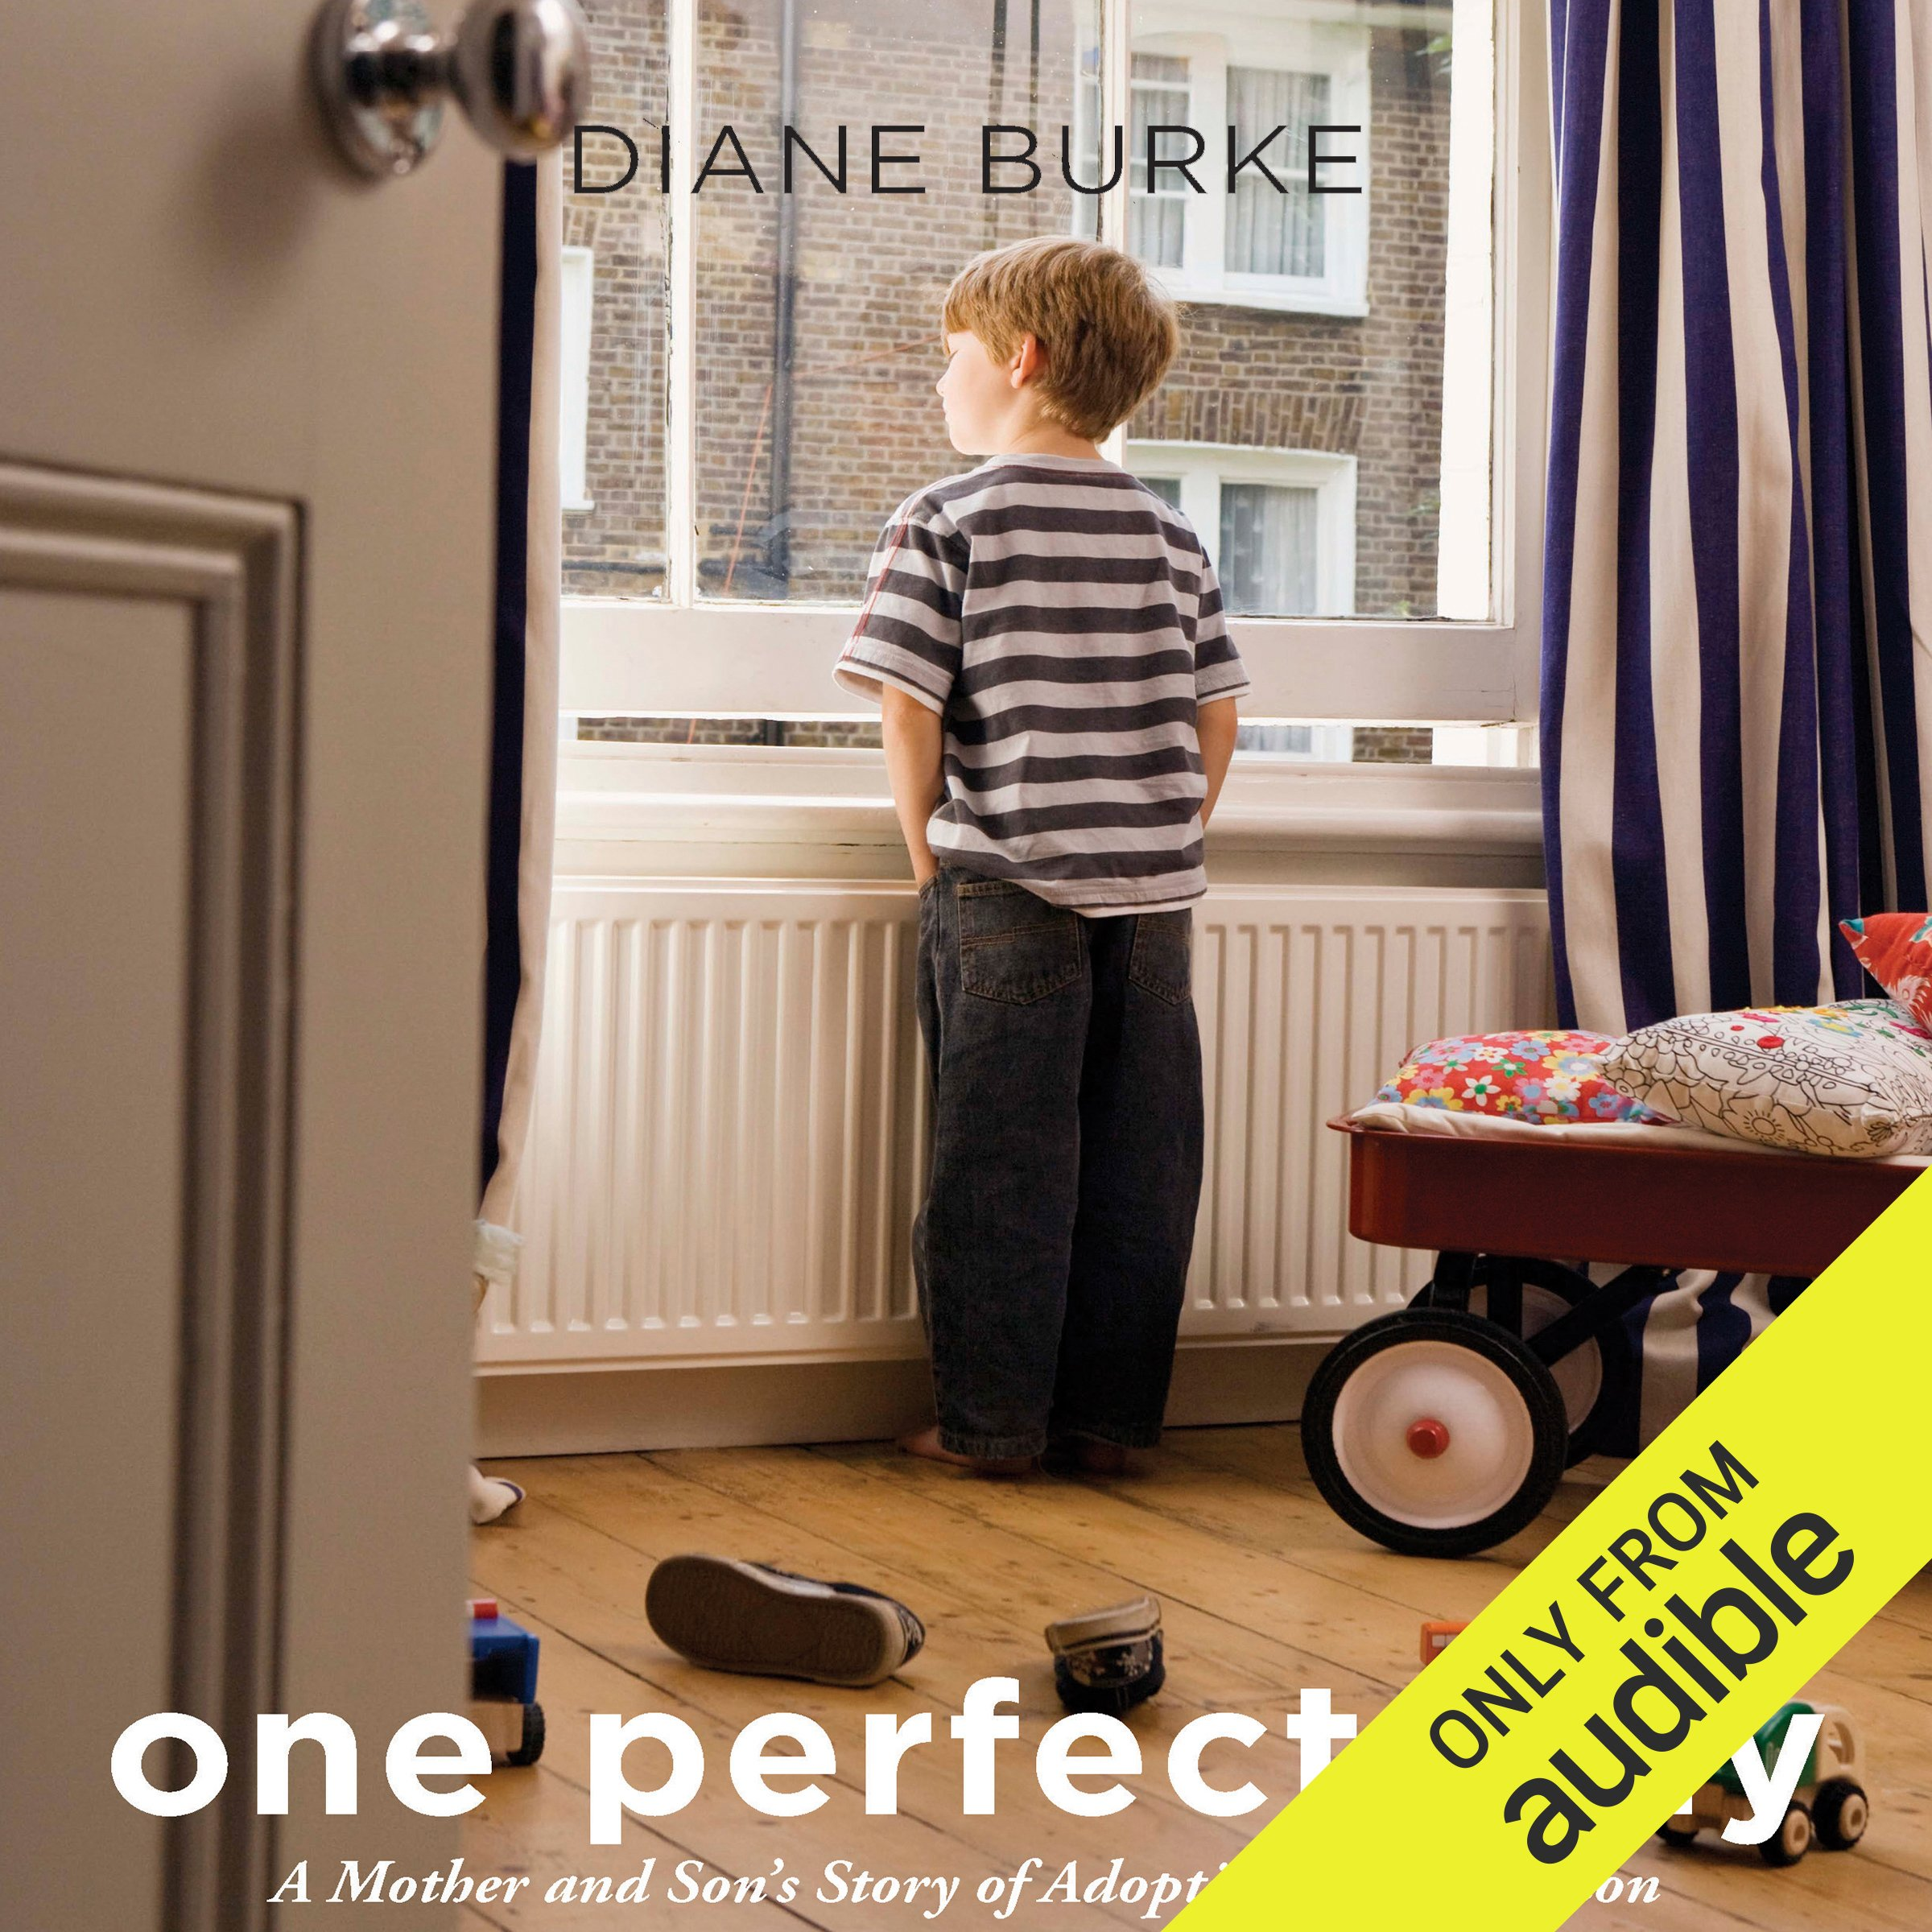 One Perfect Day: A Mother and Son's Journey of Adoption and Reunion